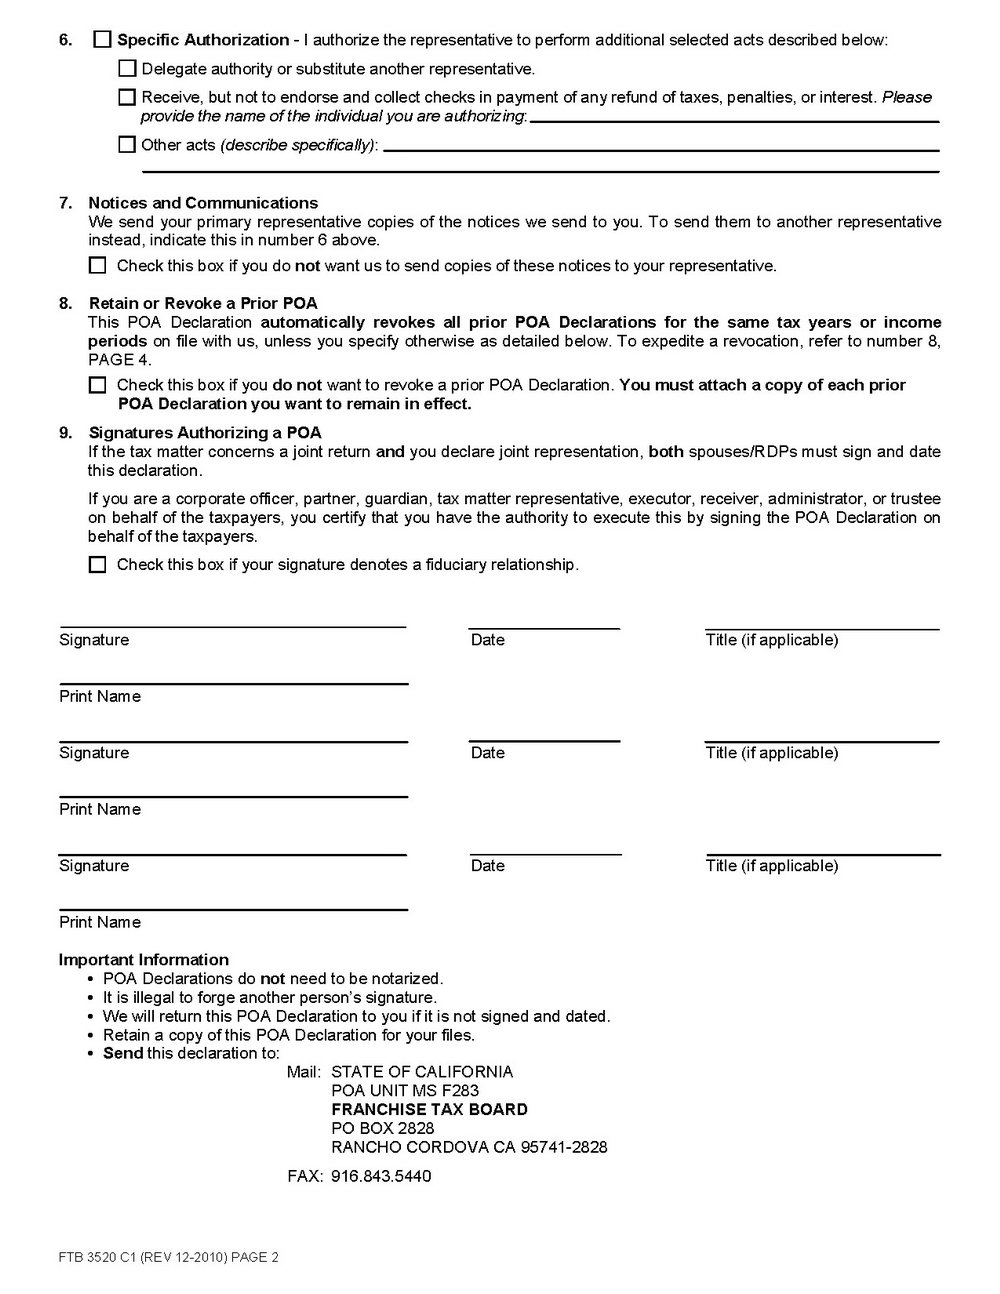 Durable Power Of Attorney California Form Pdf